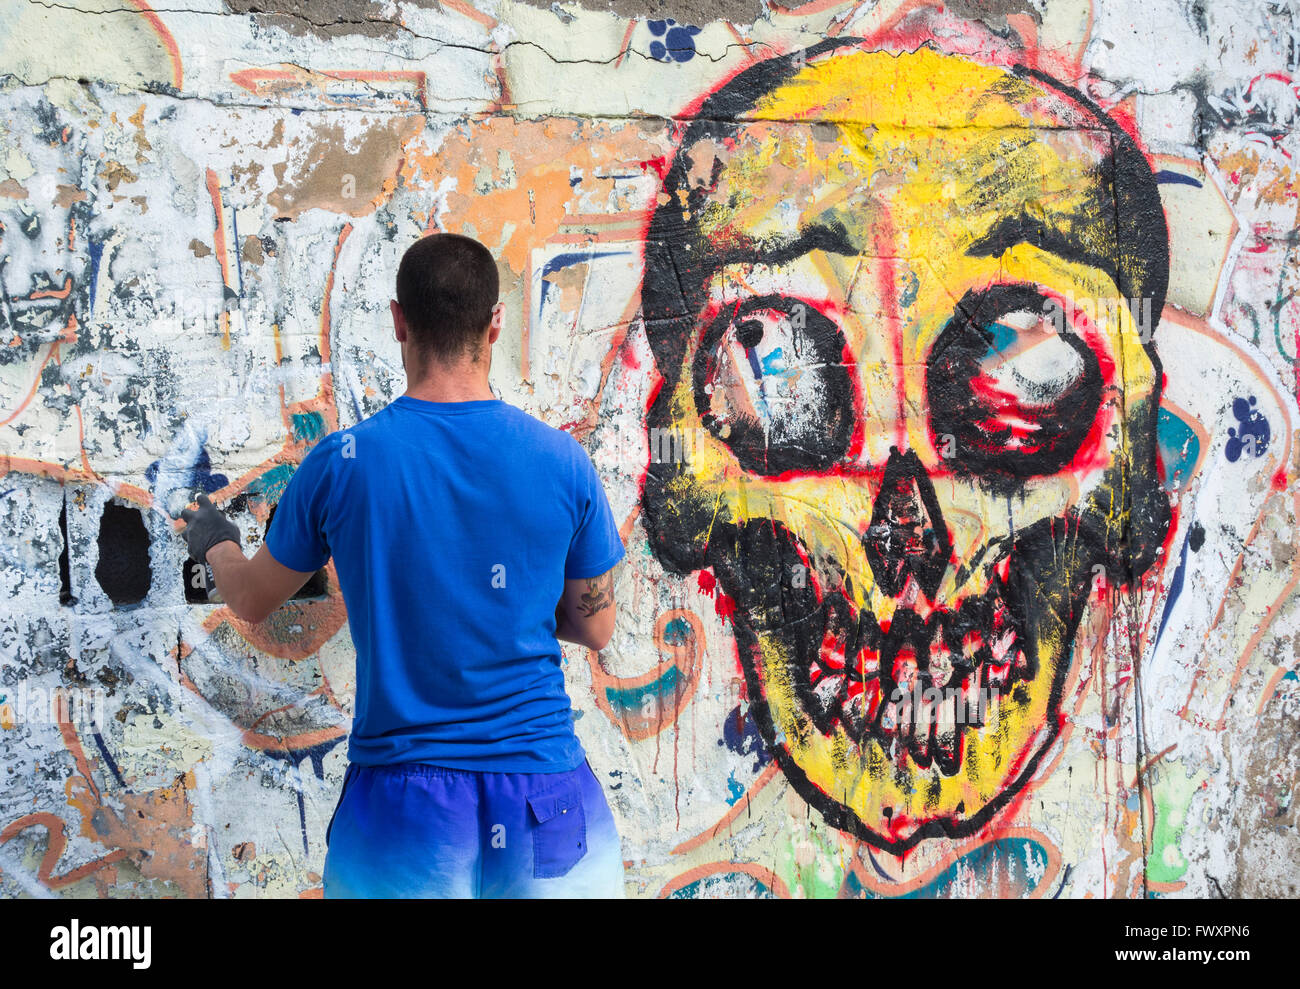 Graffiti artist spraying over old graffiti on wall in Spain - Stock Image